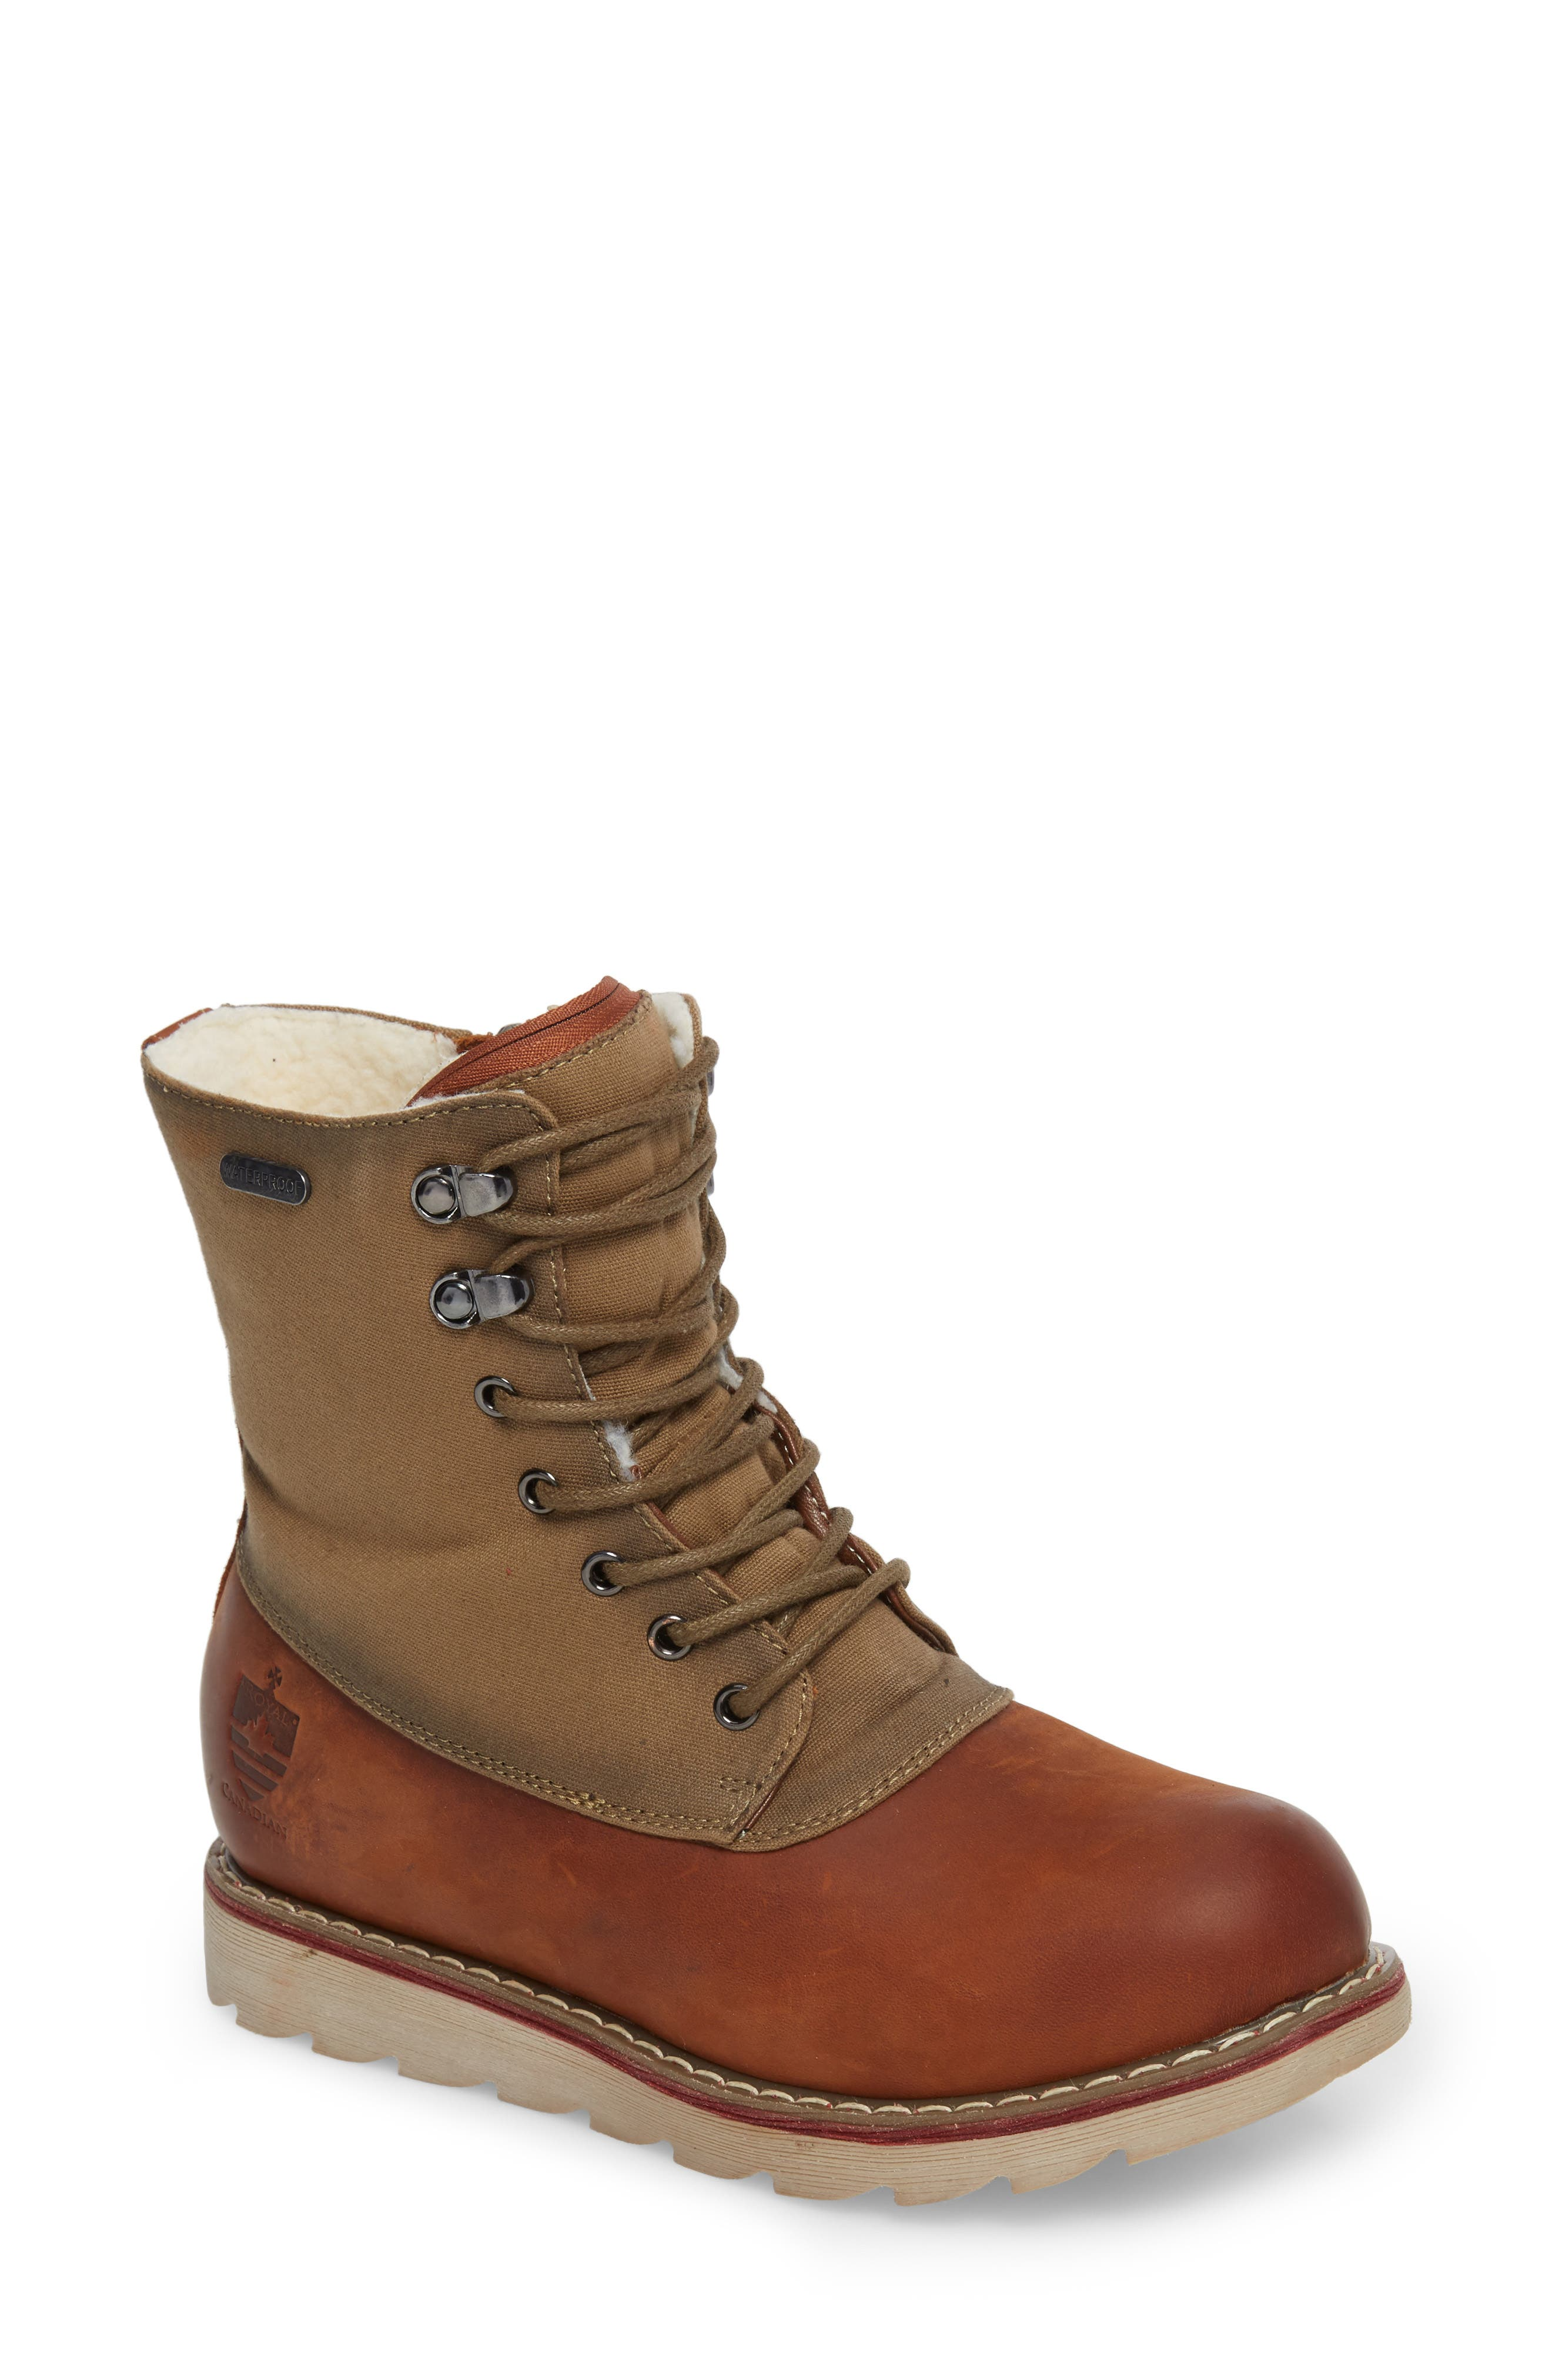 LaSalle Waterproof Insulated Winter Boot,                         Main,                         color, Cognac Leather